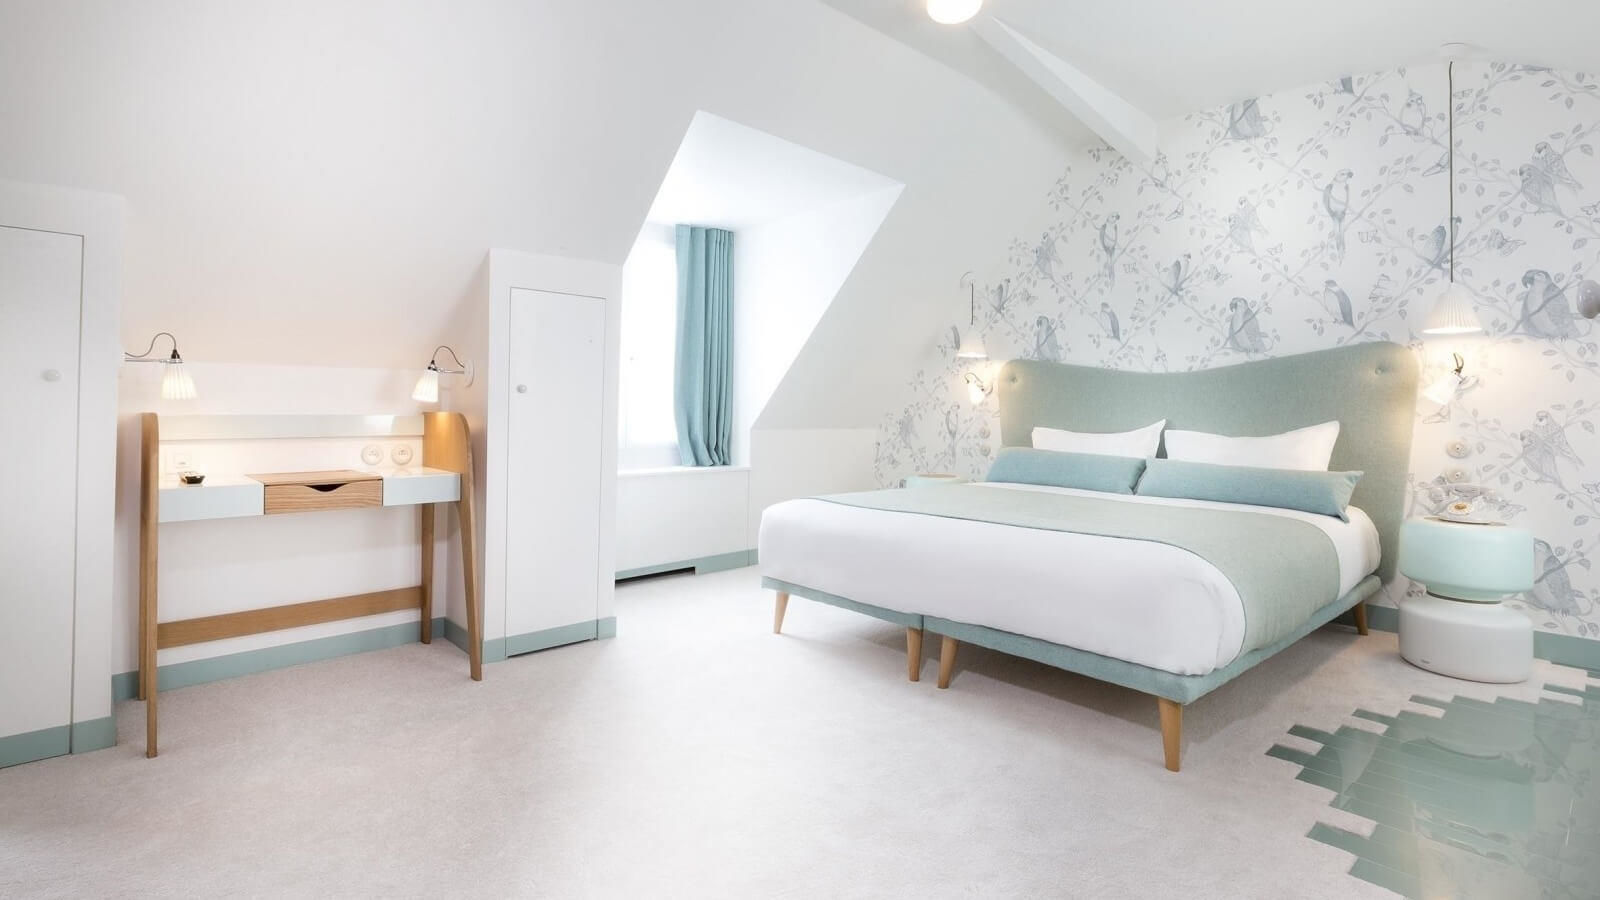 Hotel Le Lapin Blanc - Room